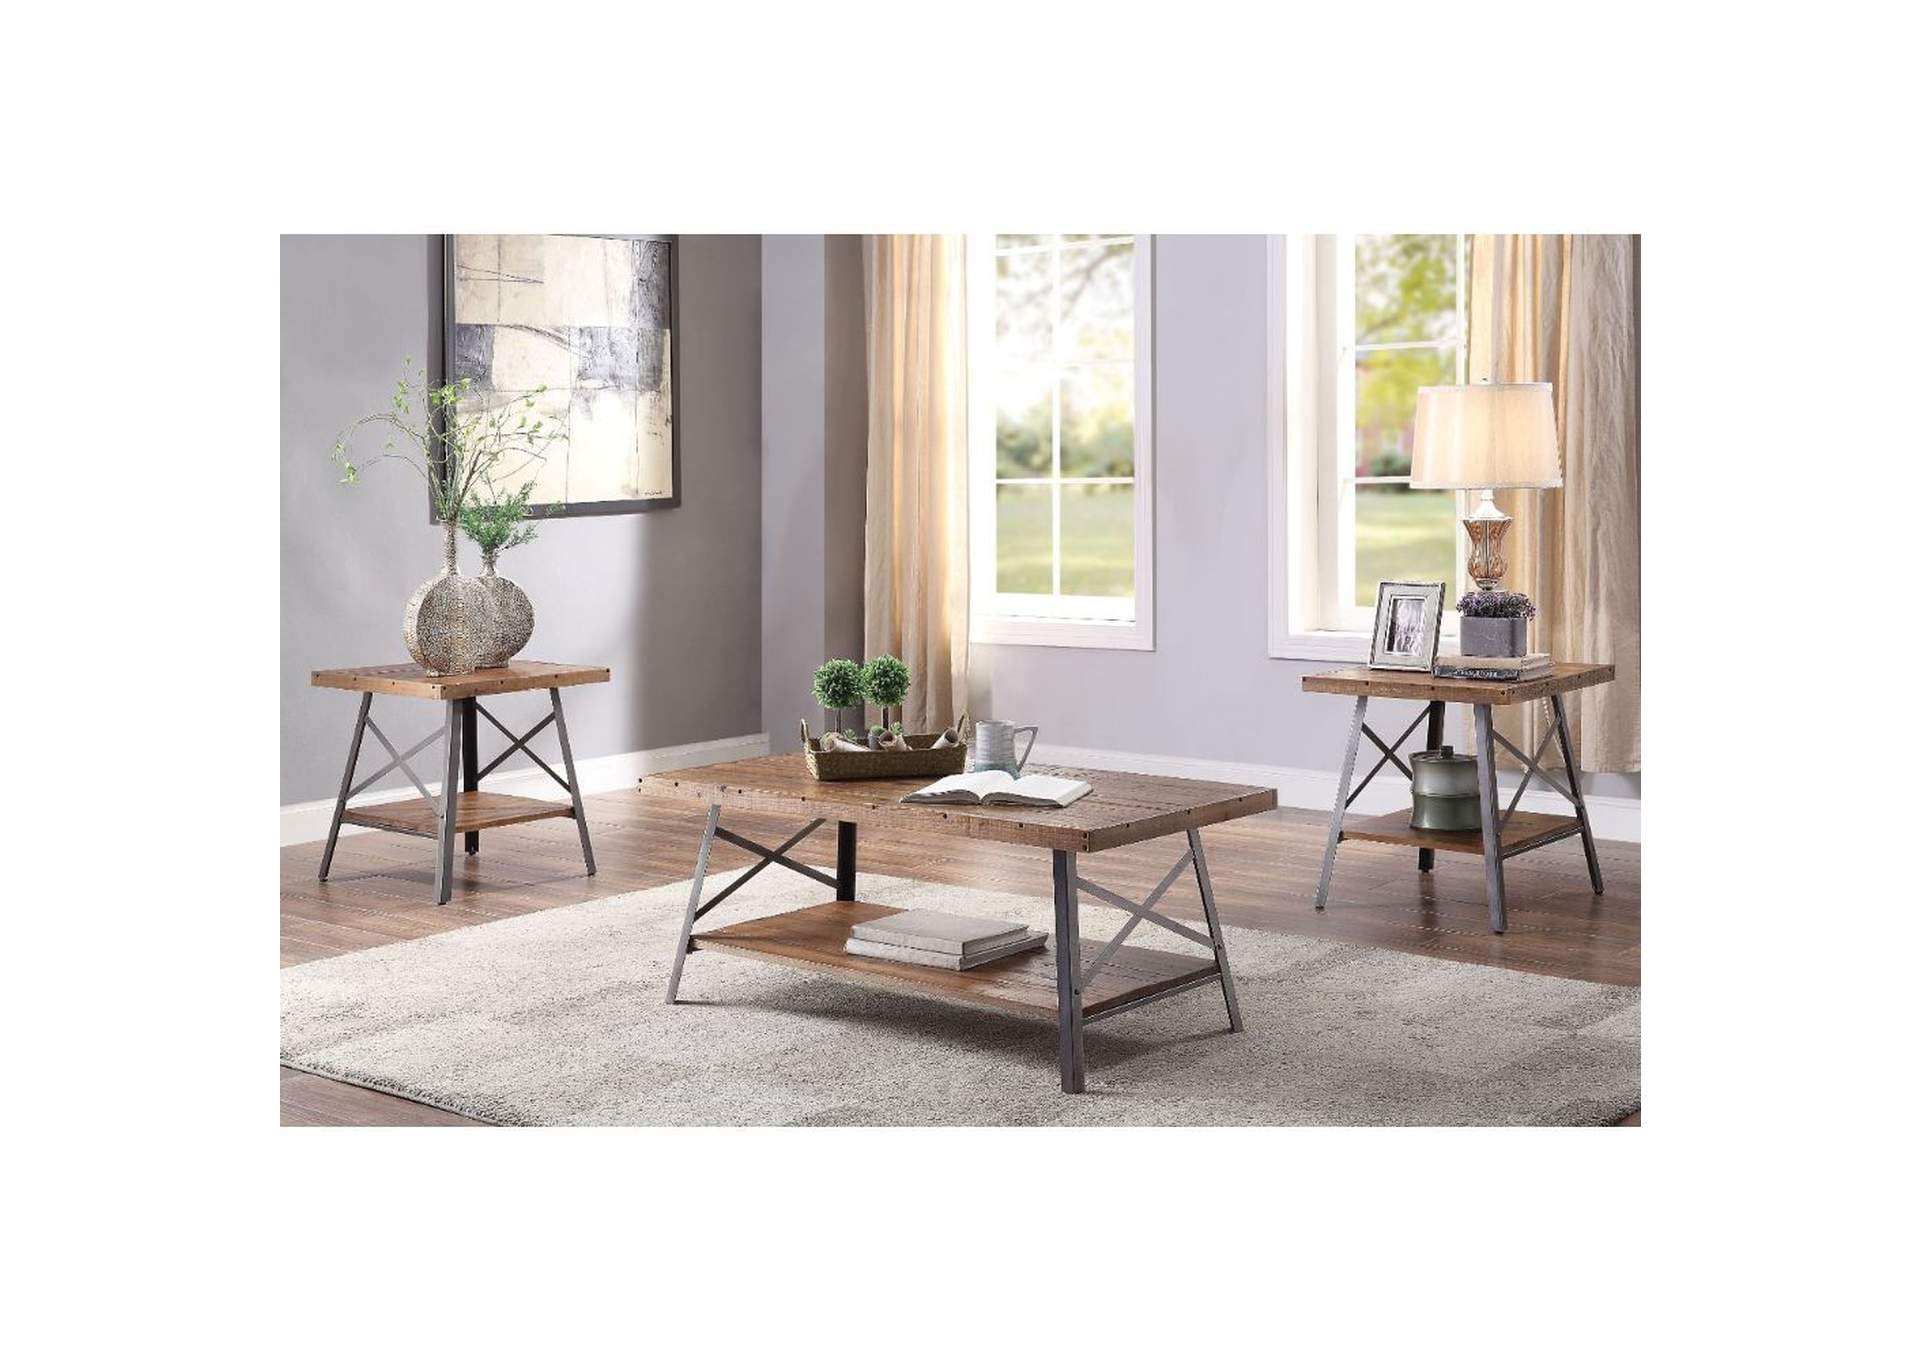 Ikram Weathered Oak & Sandy Black Coffee Table,Acme